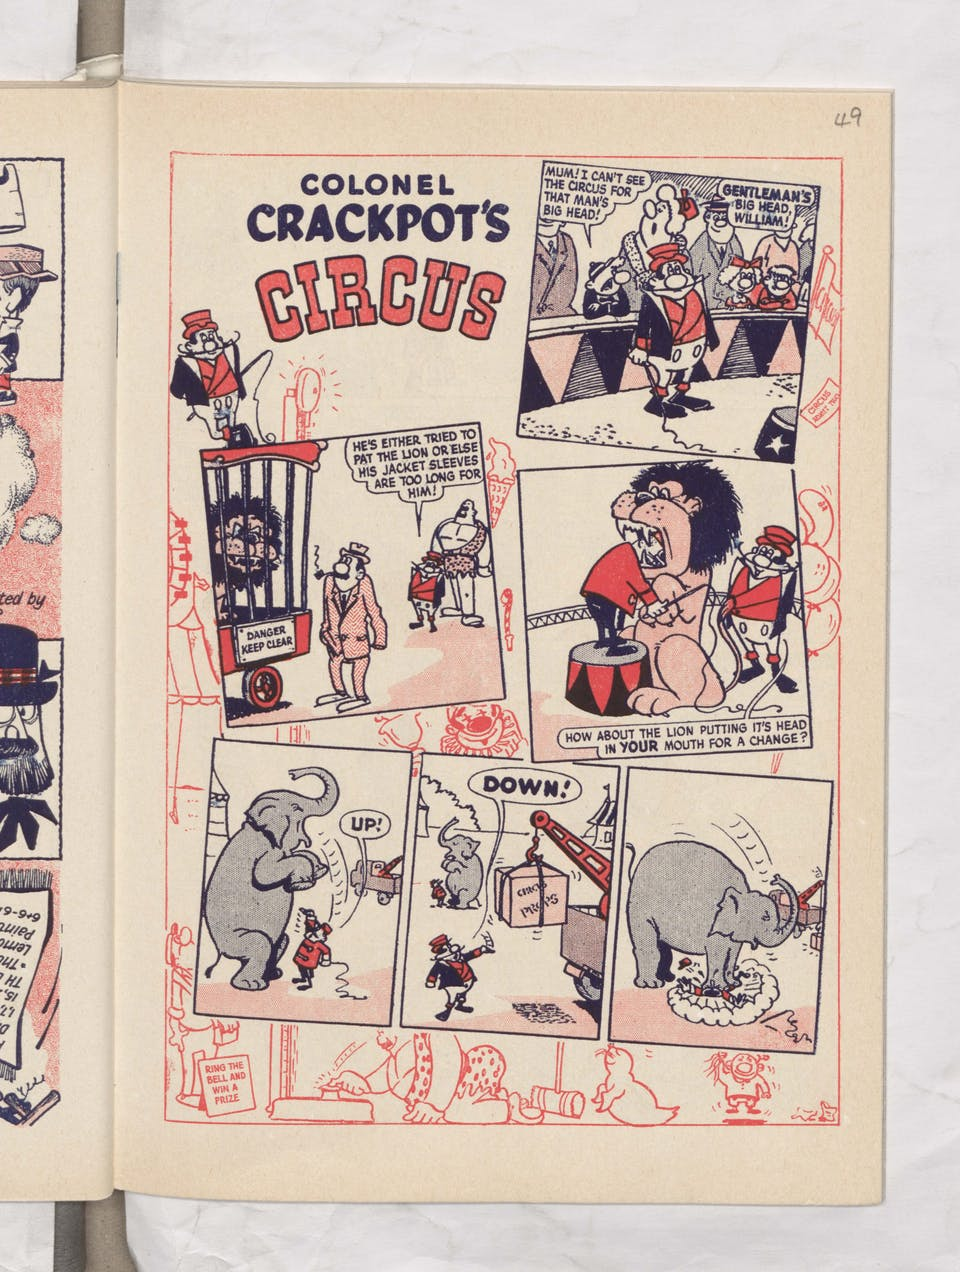 Colonel Crackpot's Circus - Beano Book 1962 Annual